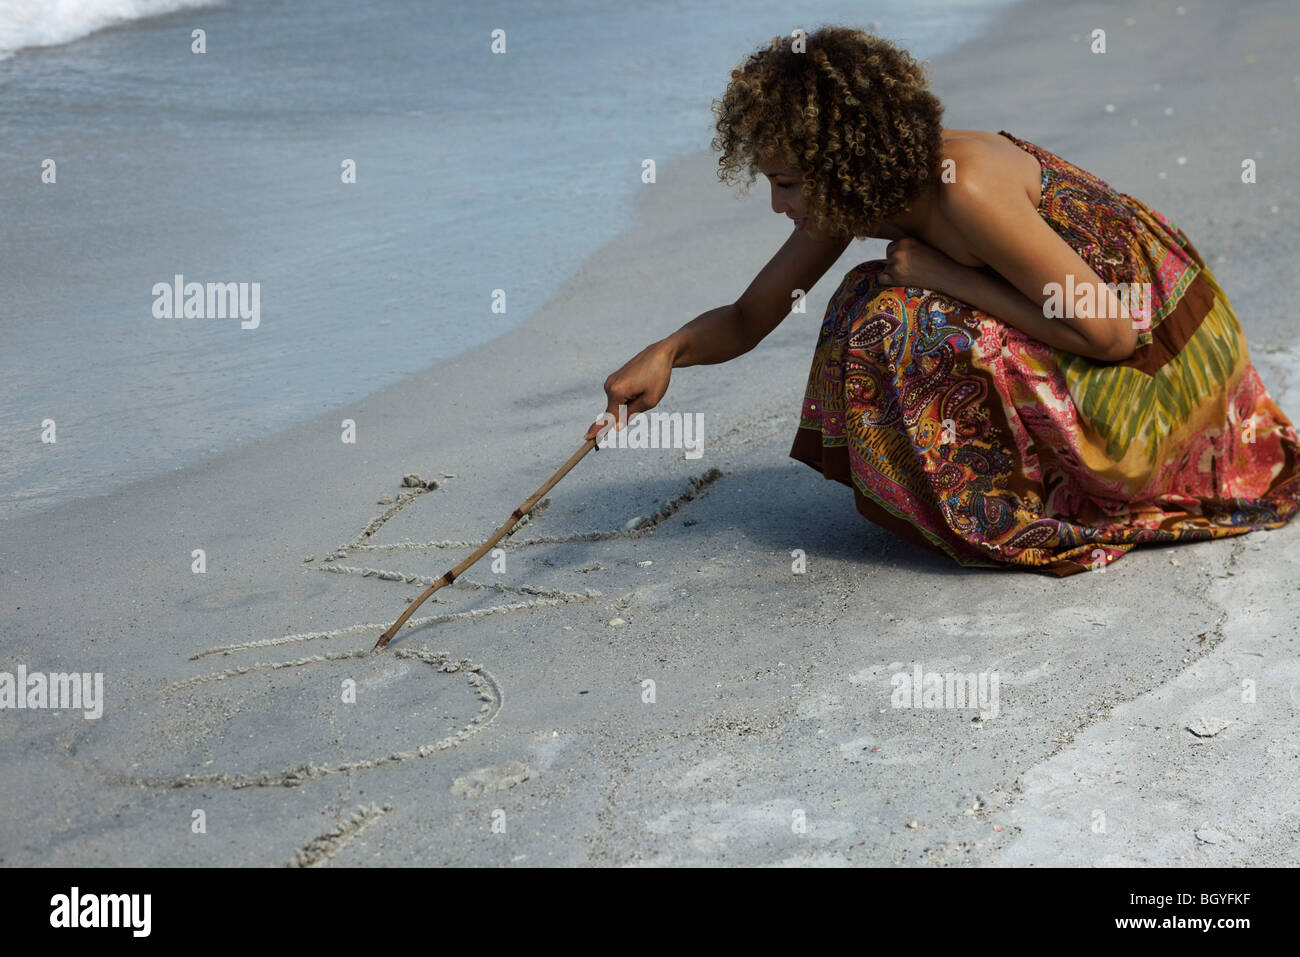 Woman at beach, writing 'love' in sand with stick - Stock Image